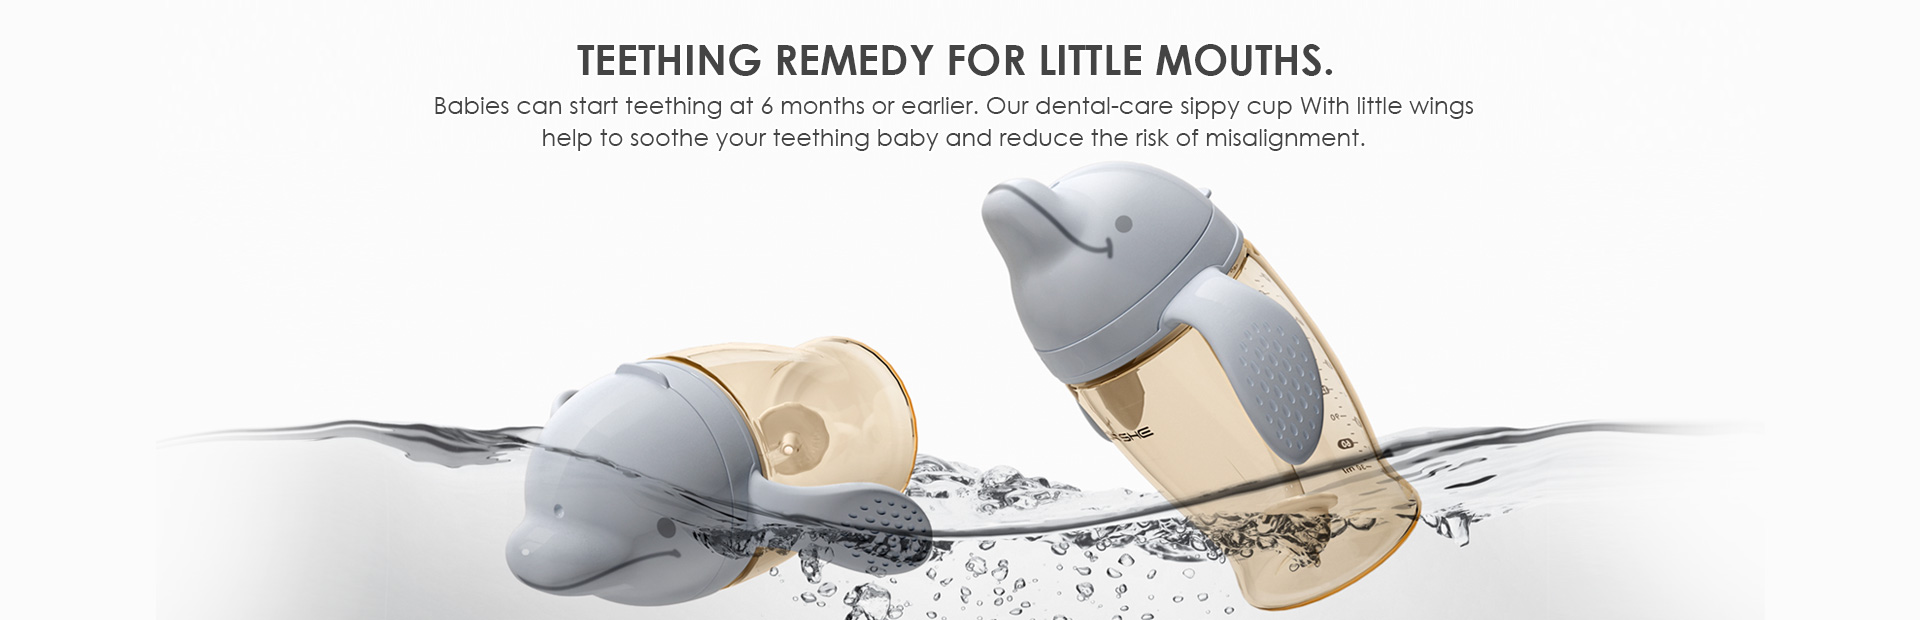 Dental-care Sippy Cup